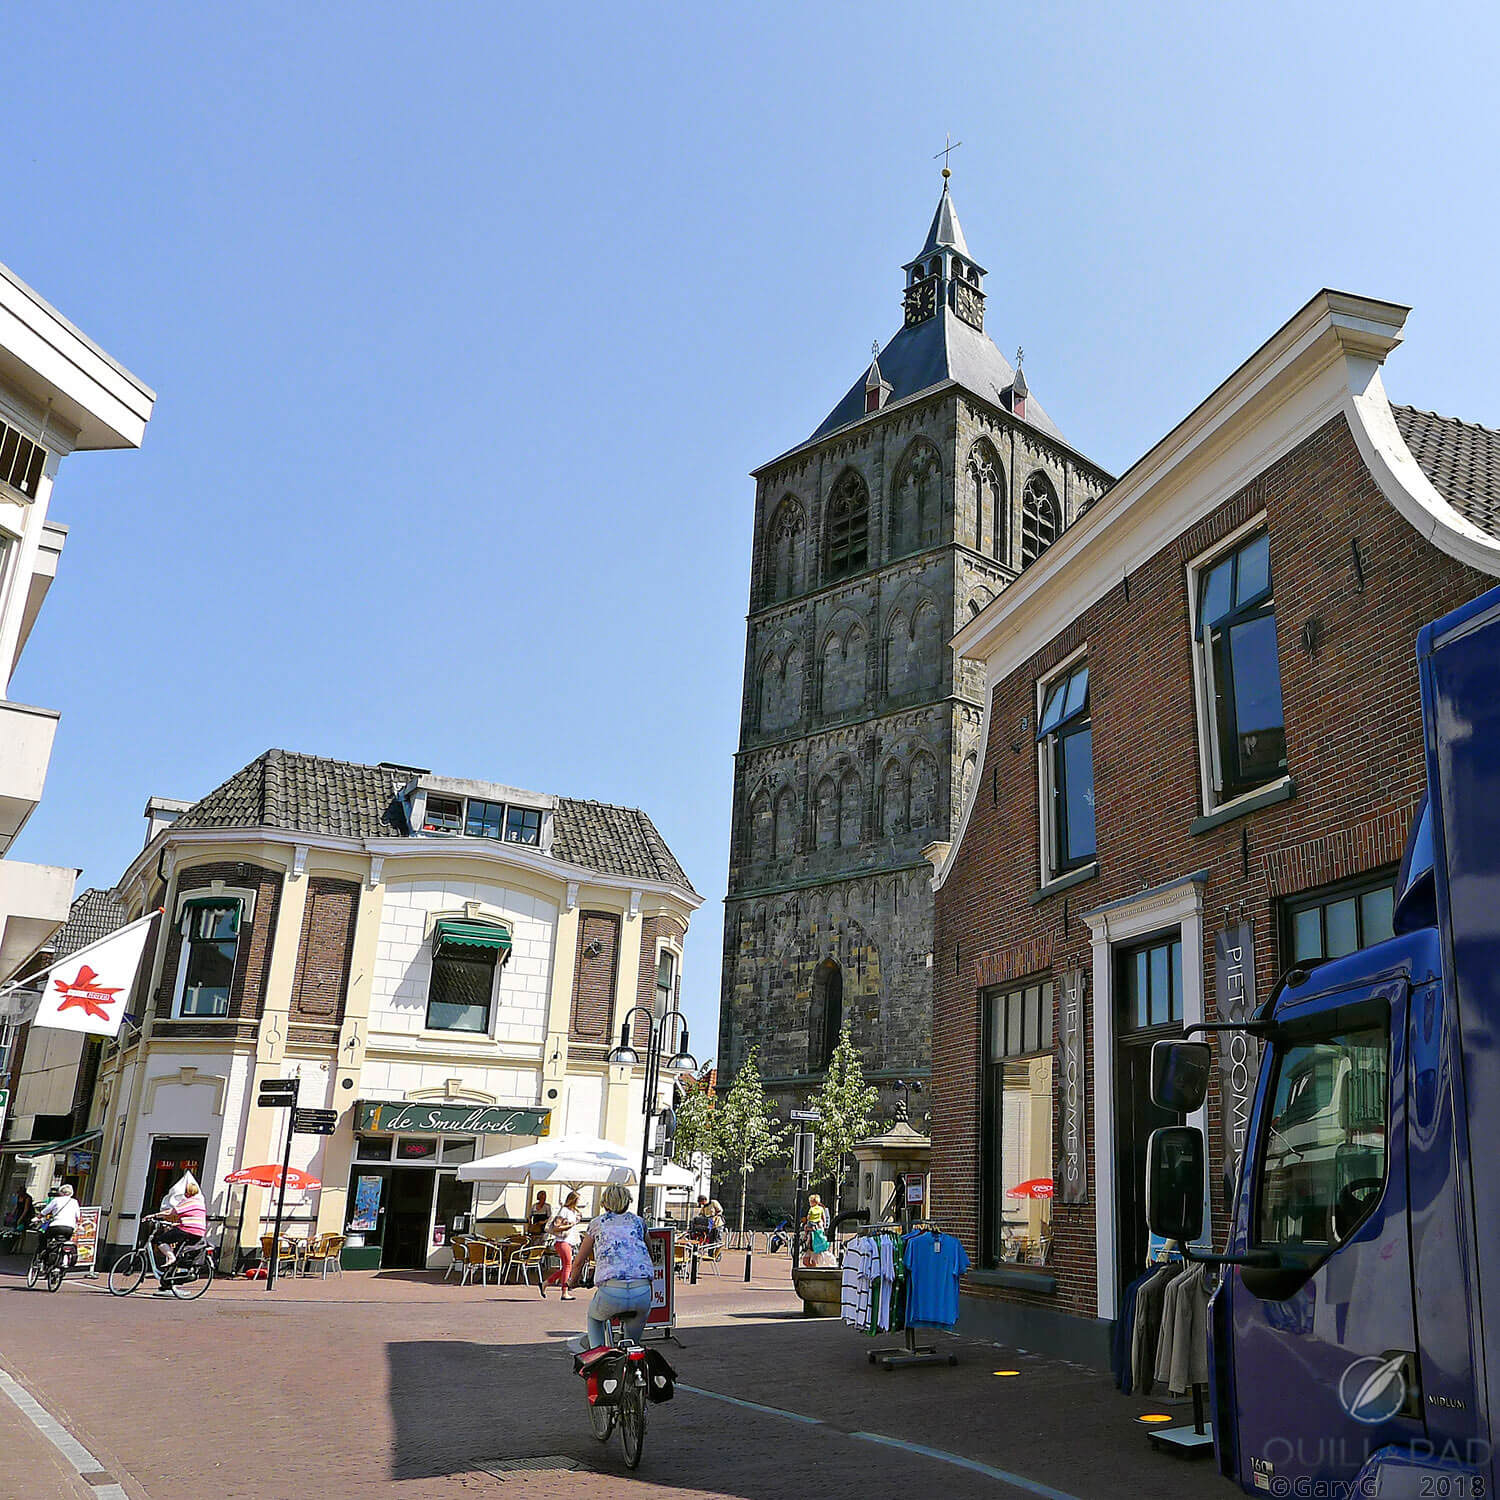 Oldenzaal, with the clock tower of the Basilica of St. Plechelm at center